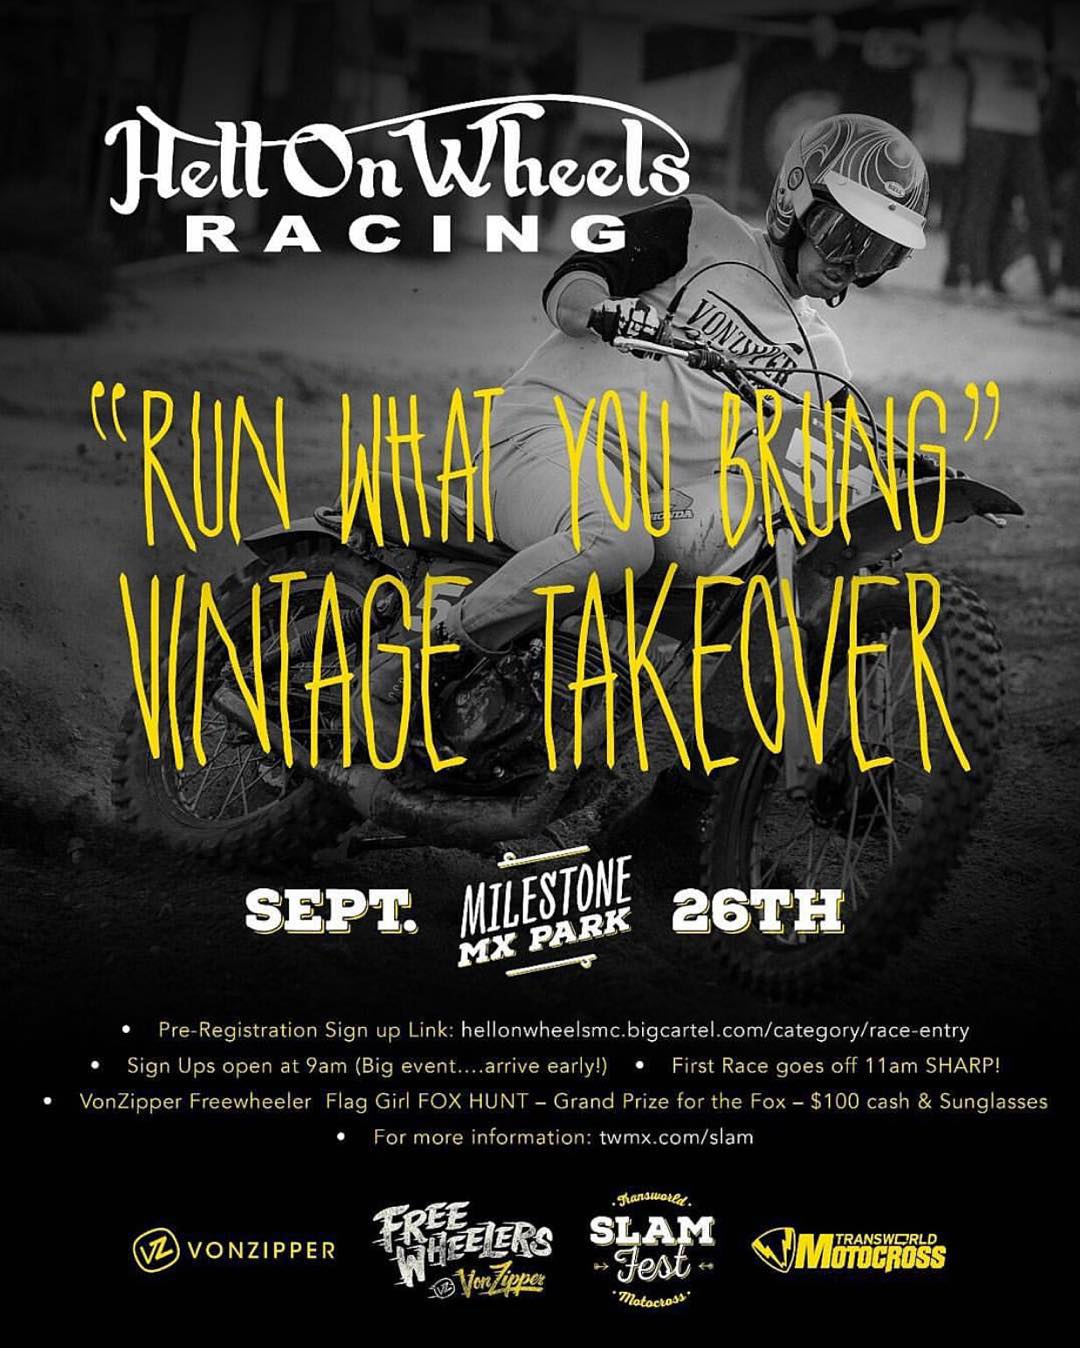 If you missed us at Perris Raceway for the @hellonwheelsmc flat track race, your life isn't over. We are gonna fire up the vintage bikes again and bang some handle bars for the #RunWhatYouBrung Vintage Takeover at @twmxdotcom #SlamFest September 26th...